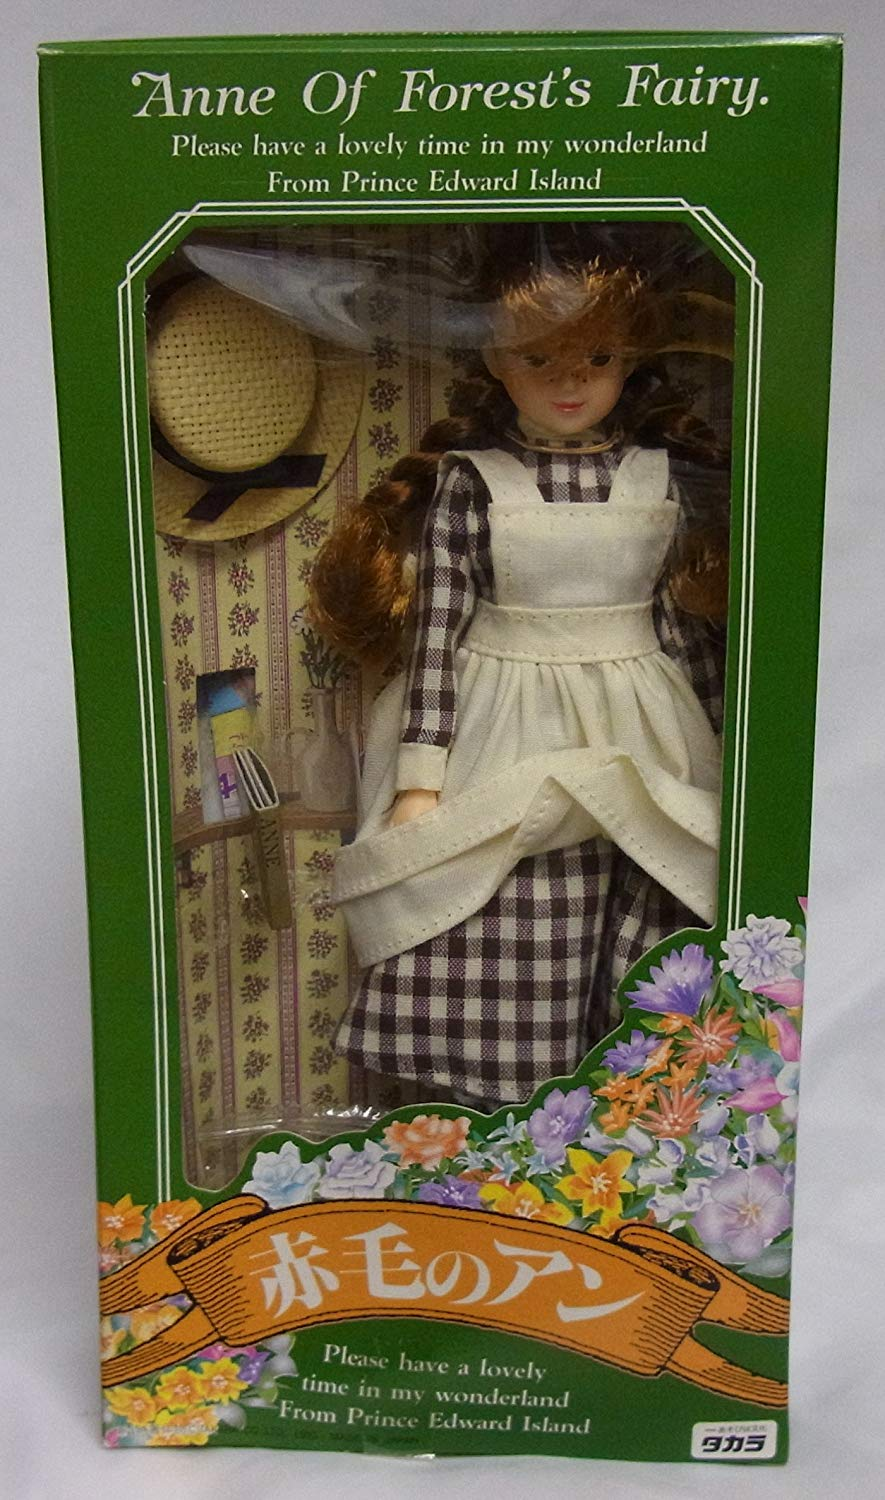 Takara Tomy Fashion Doll - Red Haired Anne - Anne of the Forest's Fairy (Takara Tomy)